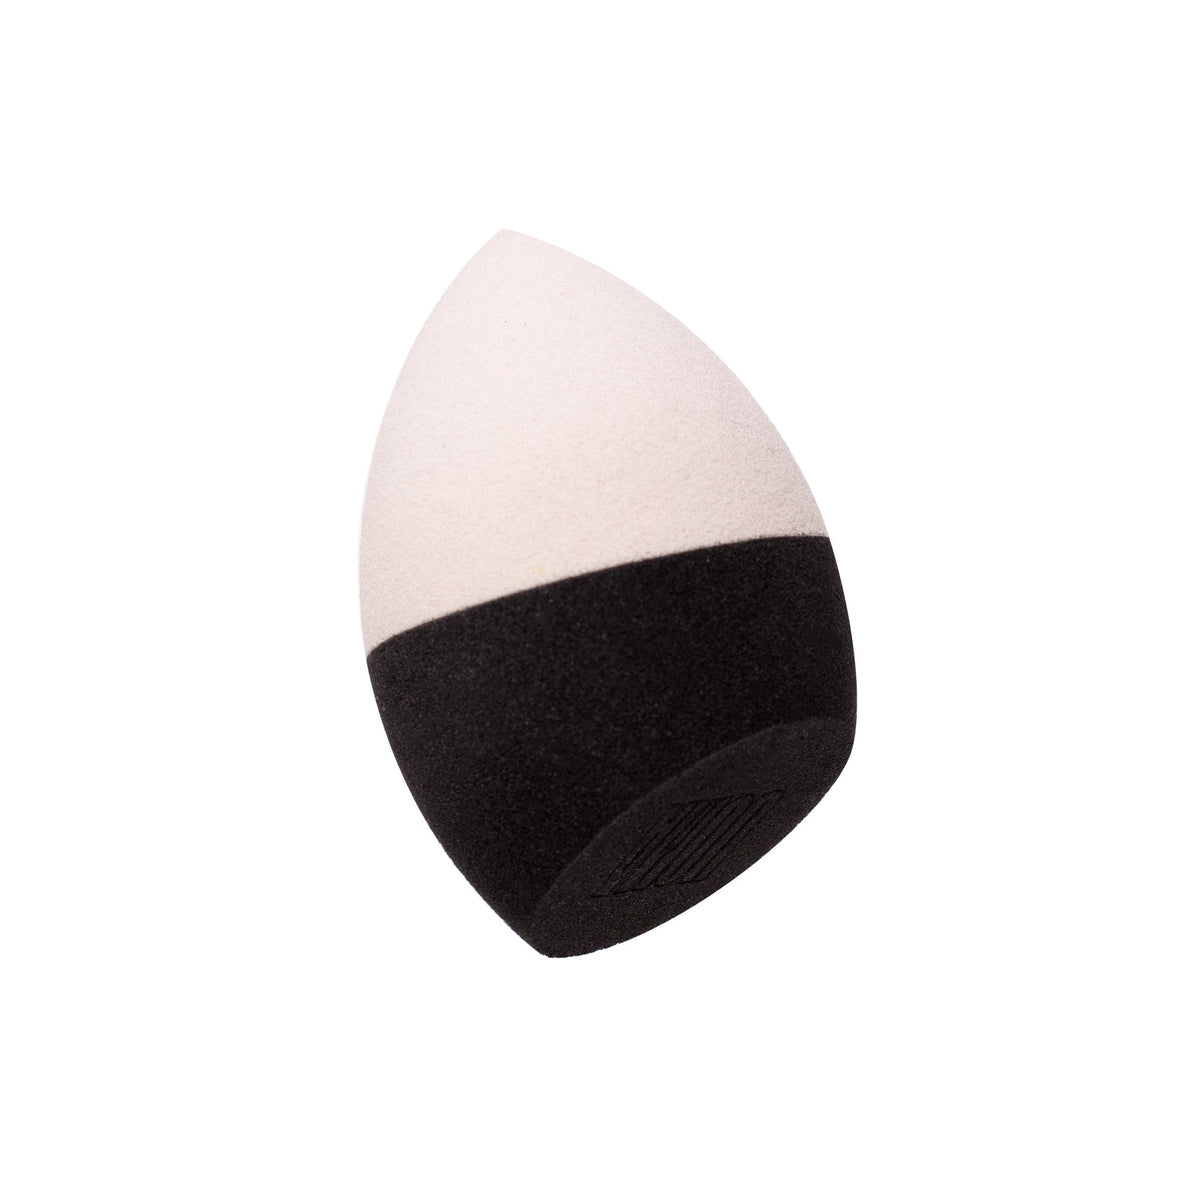 big-head-dual-makeup-sponge